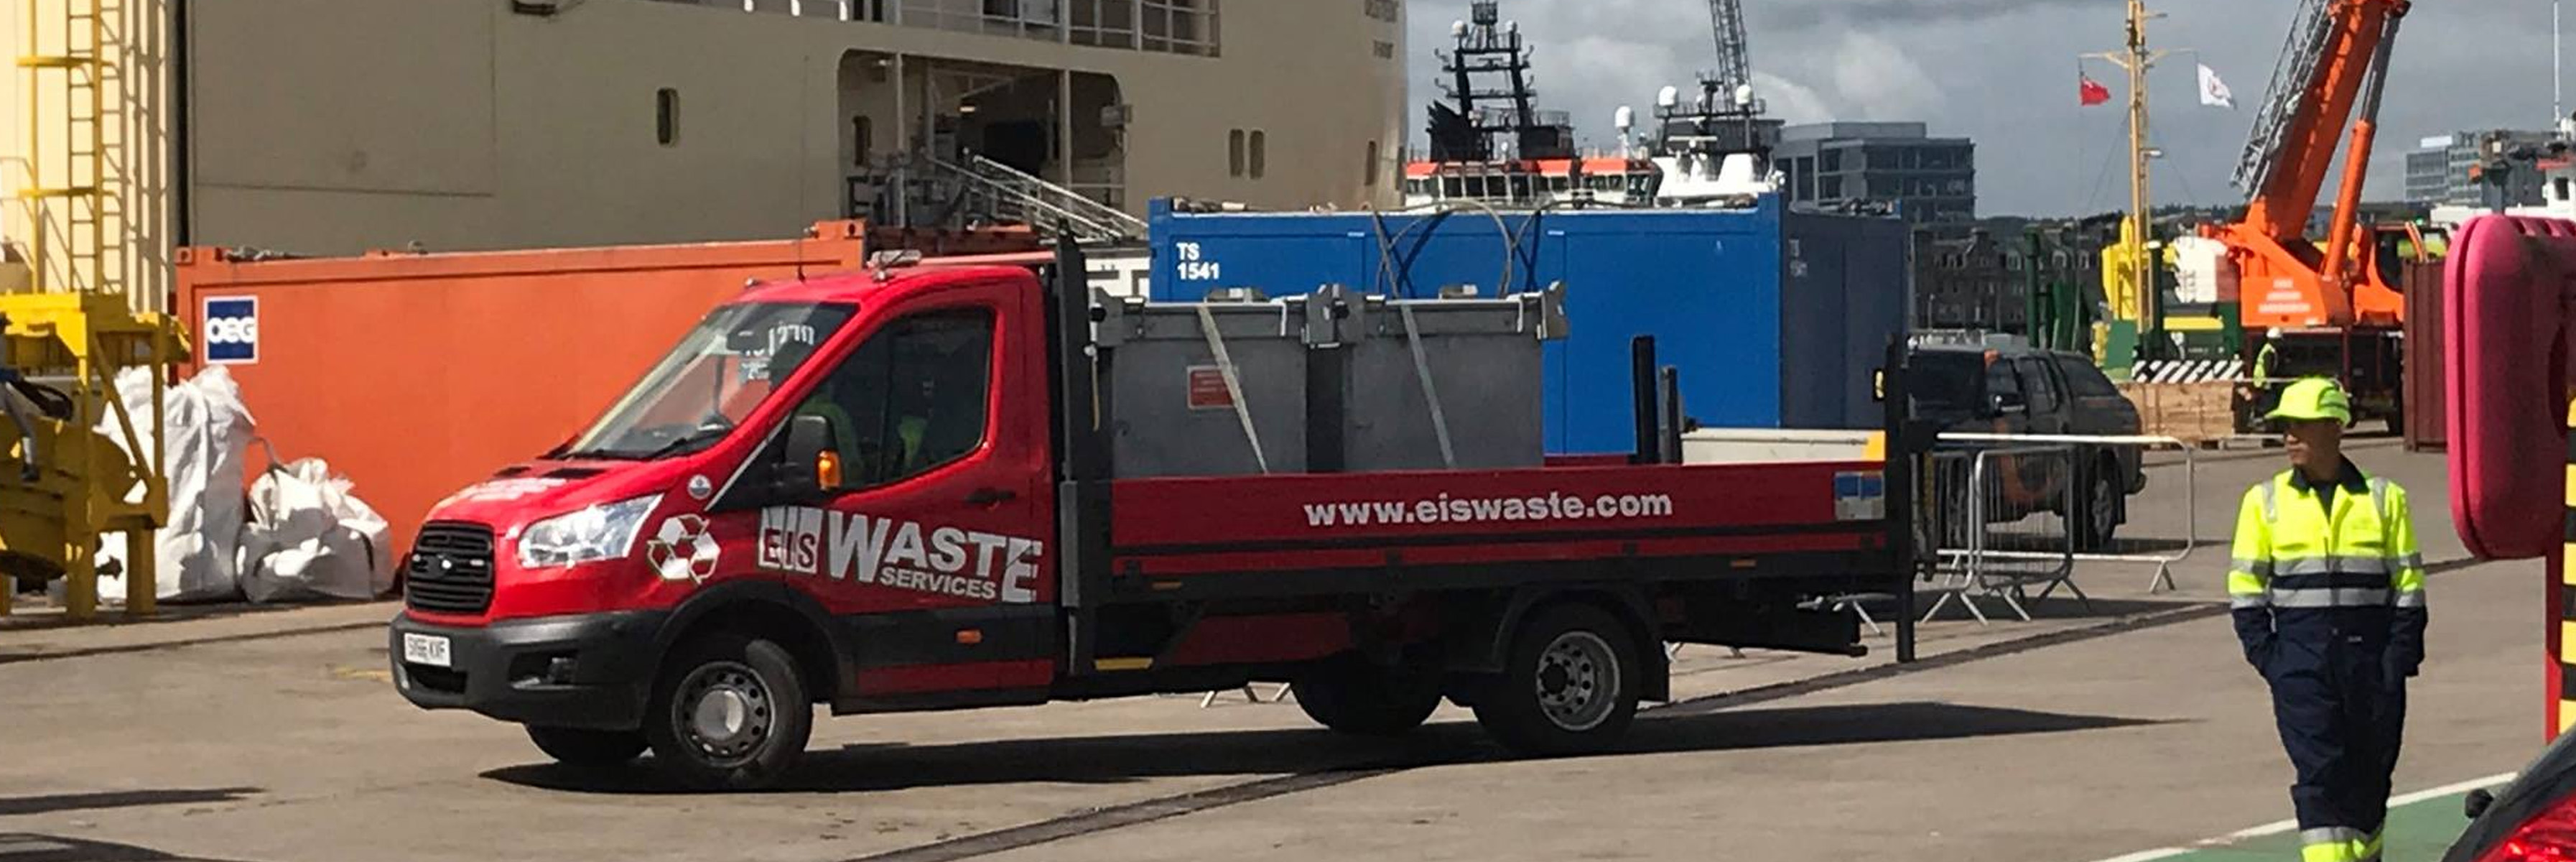 EIS Waste | Skip Hire and Waste Recycling in Aberdeen & Aberdeenshire